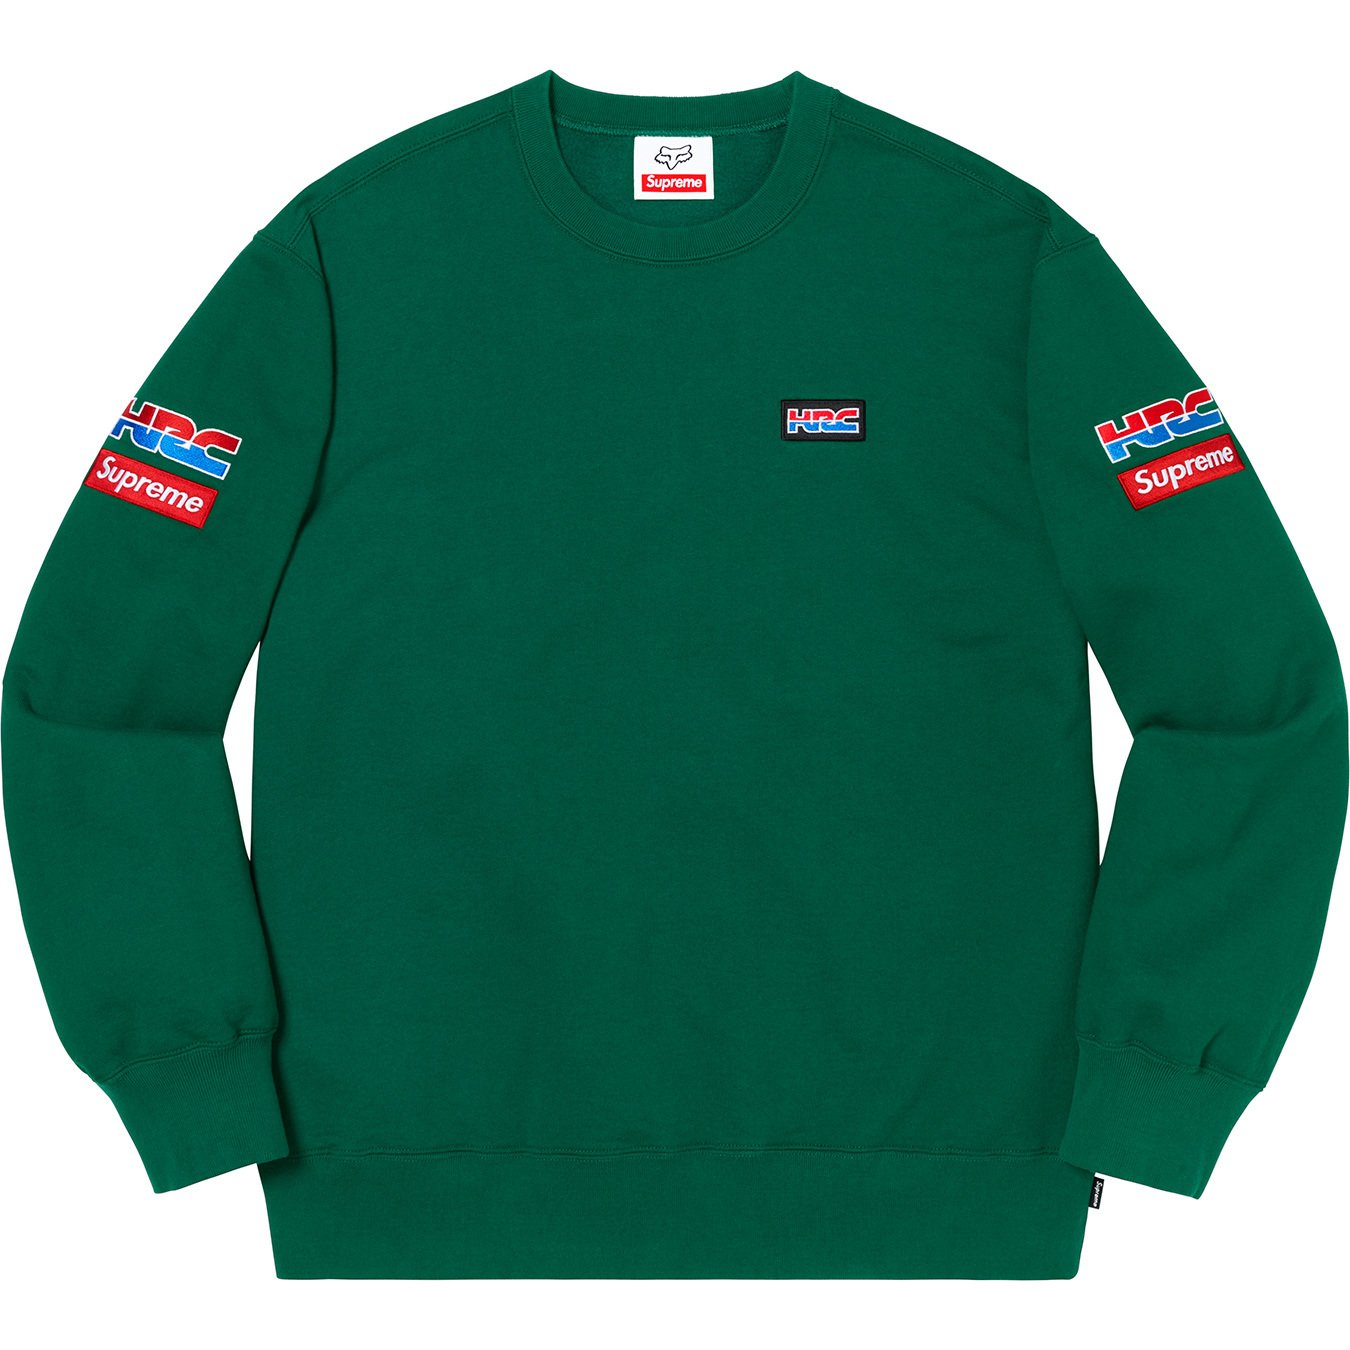 supreme-19aw-19fw-honda-fox-racing-collaboration-release-20191005-week6-crewneck